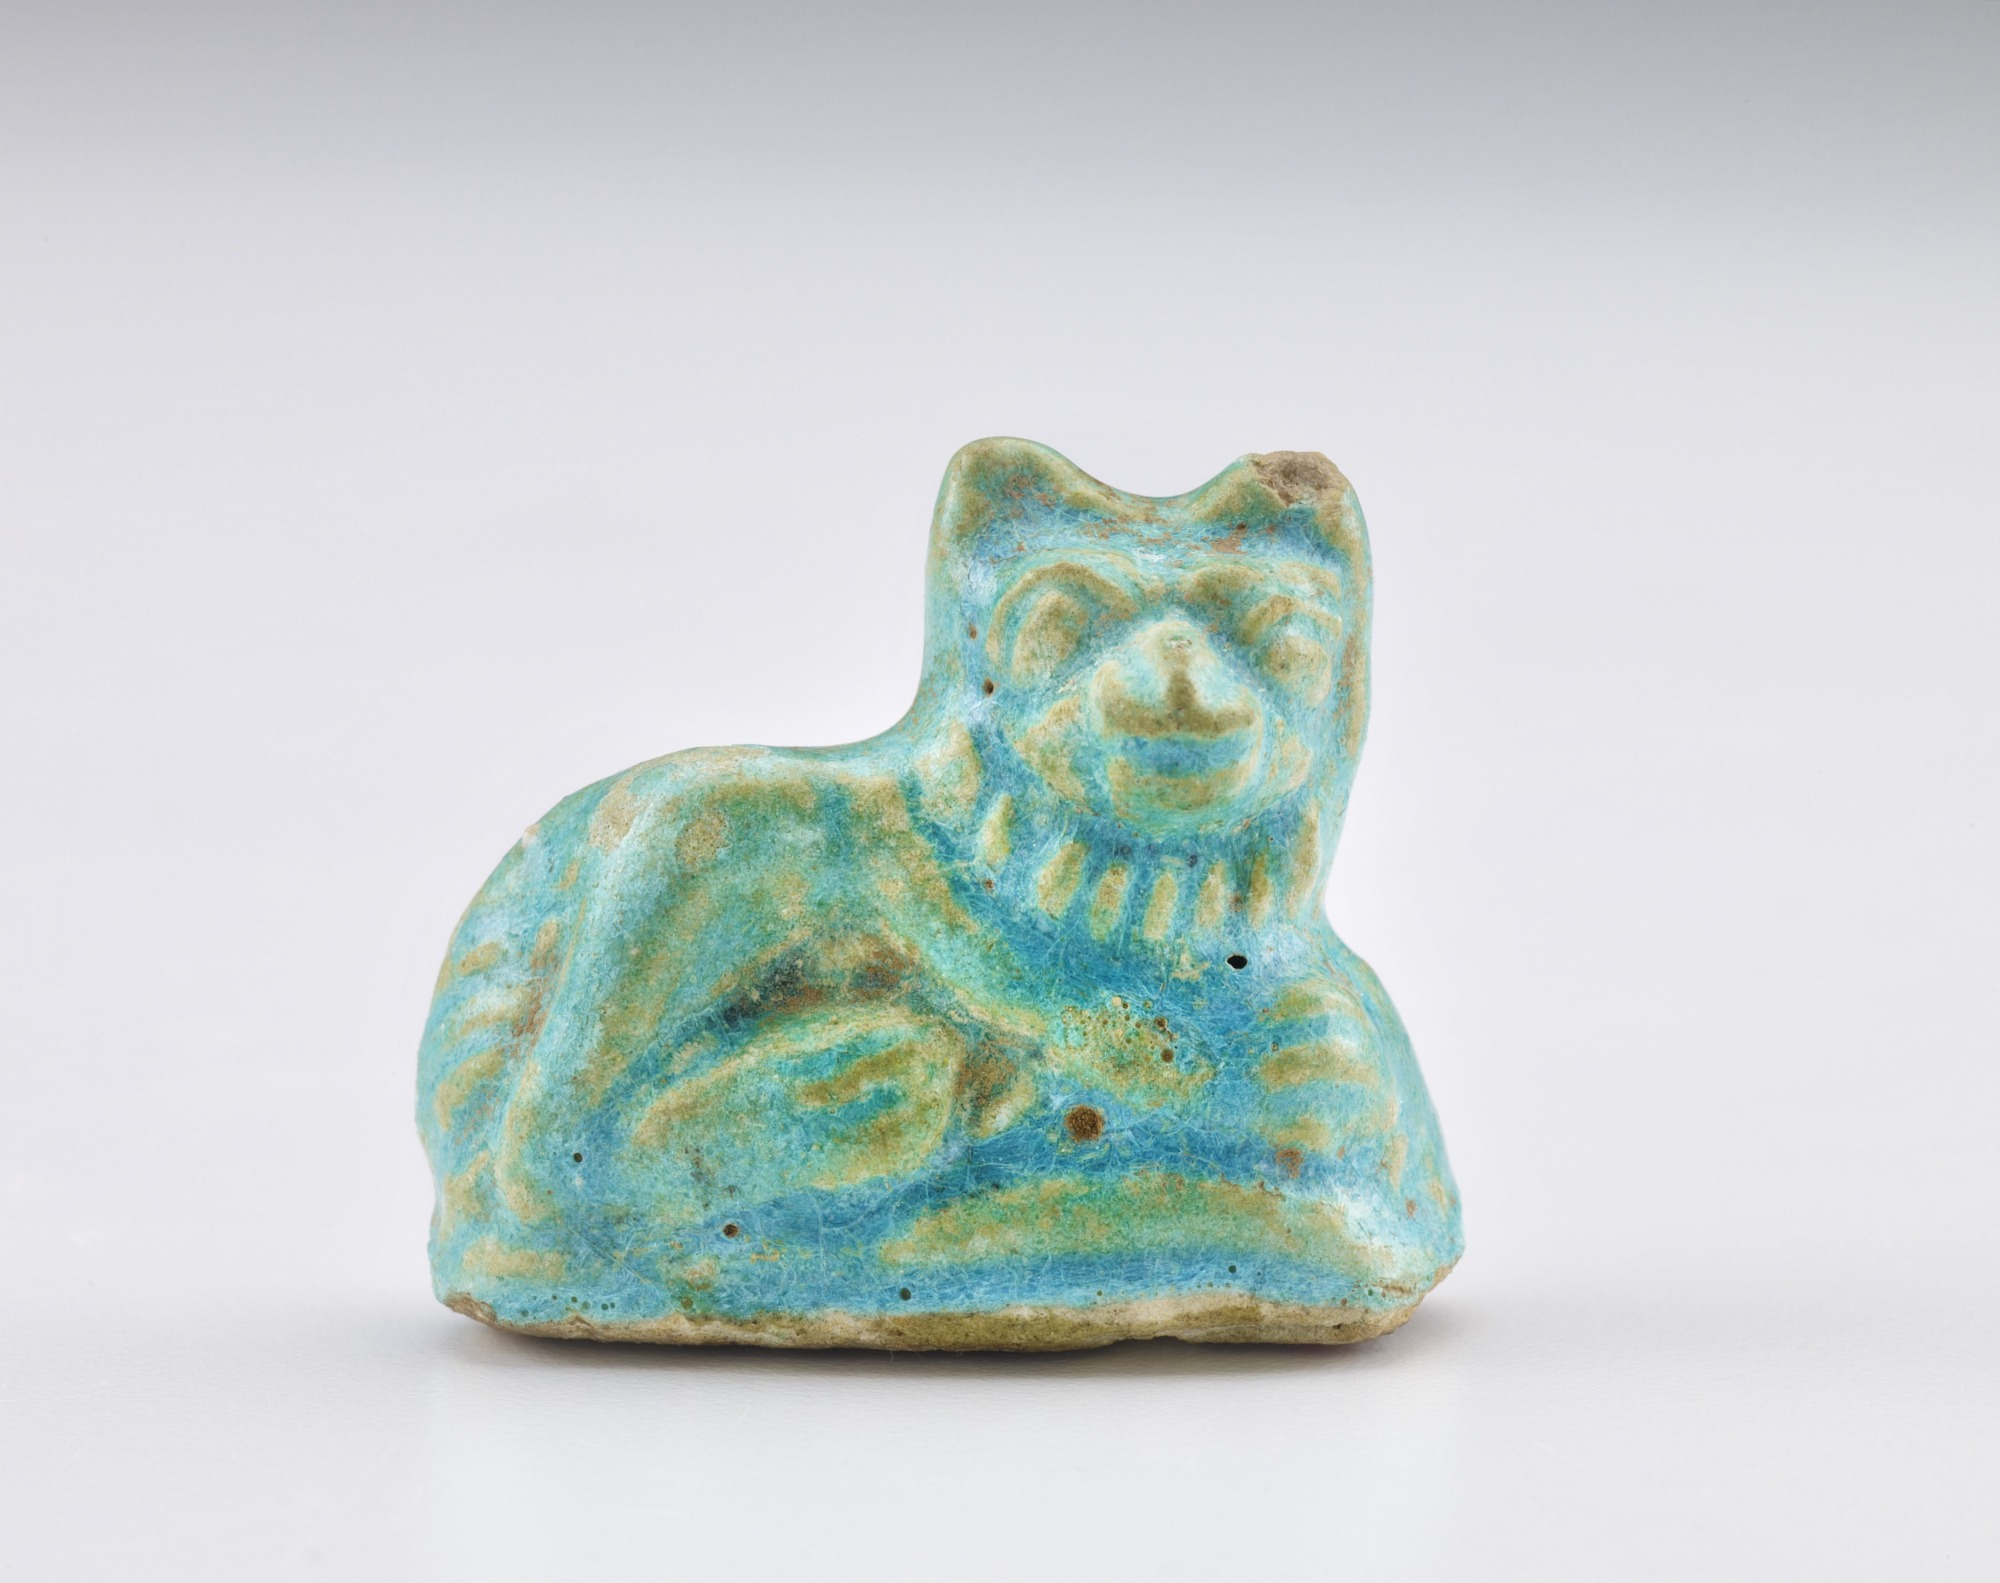 Figure of a small reclining animal